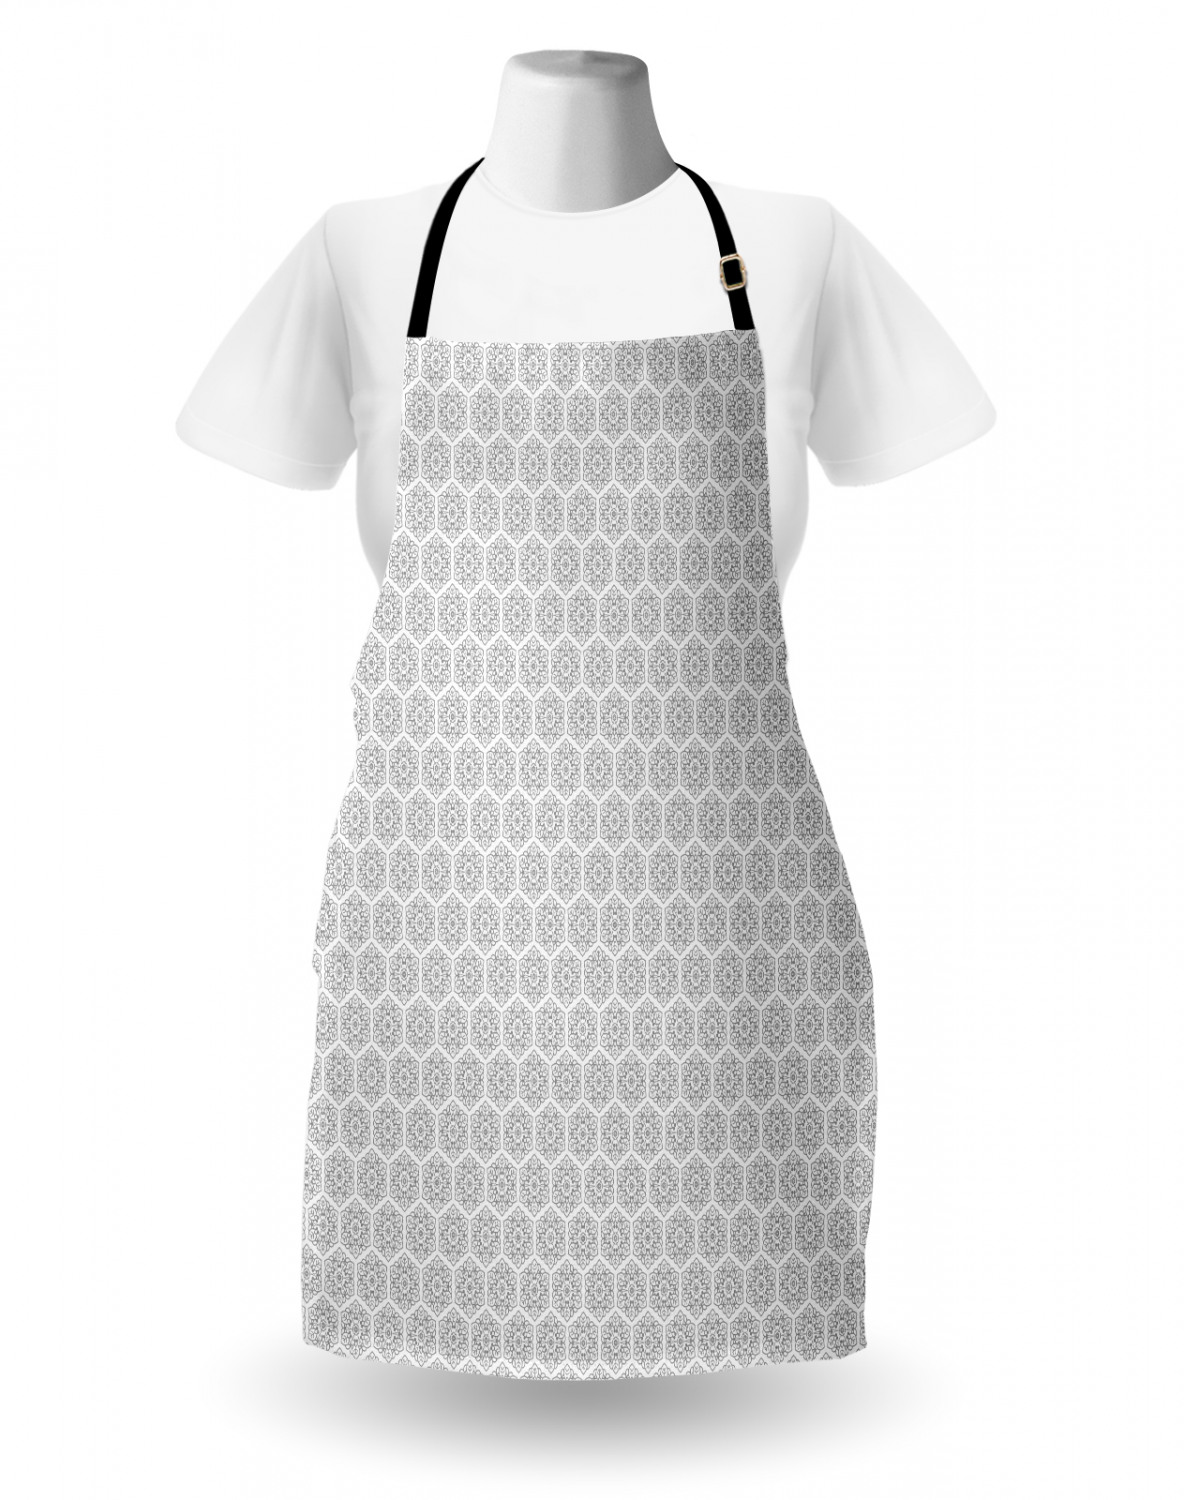 Ambesonne-Outdoor-Use-Apron-with-Adjustable-Neck-Strap-for-Gardening-and-Cooking miniatura 95